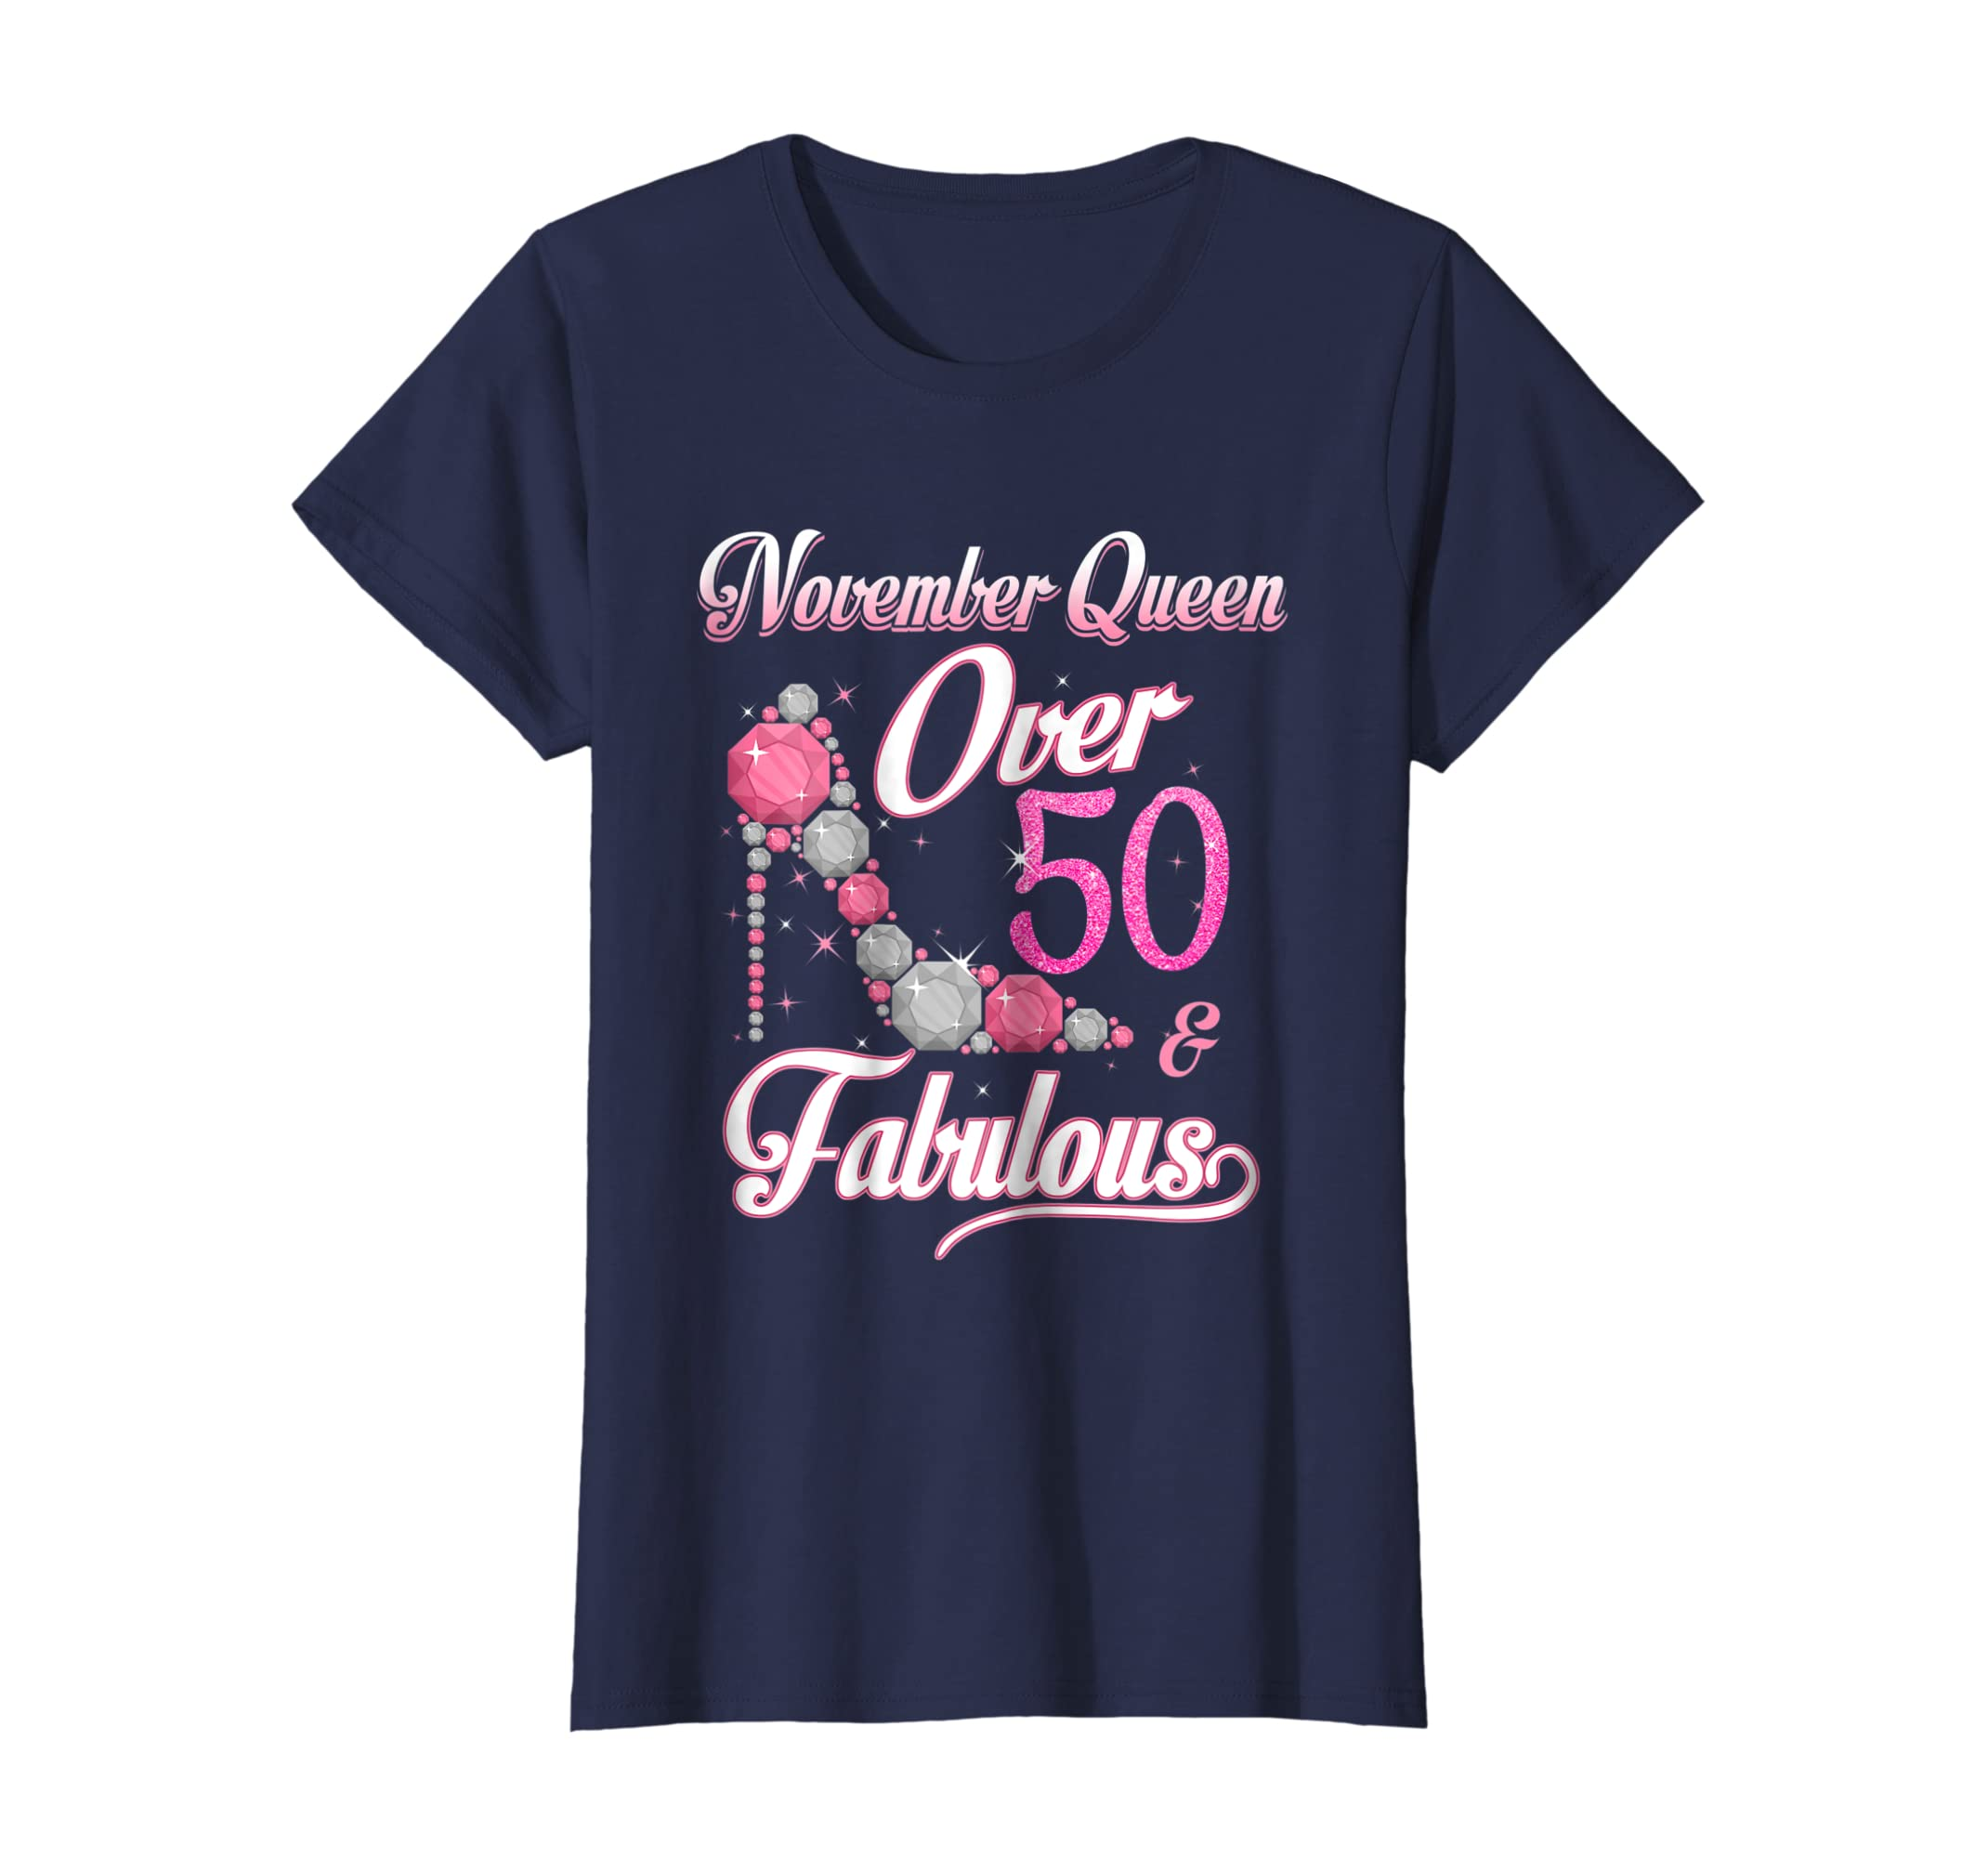 ... Womens Women November Queen Over 50   Fabulous T Shirt 50 Years  Old-Teechatpro ... 443e2e402